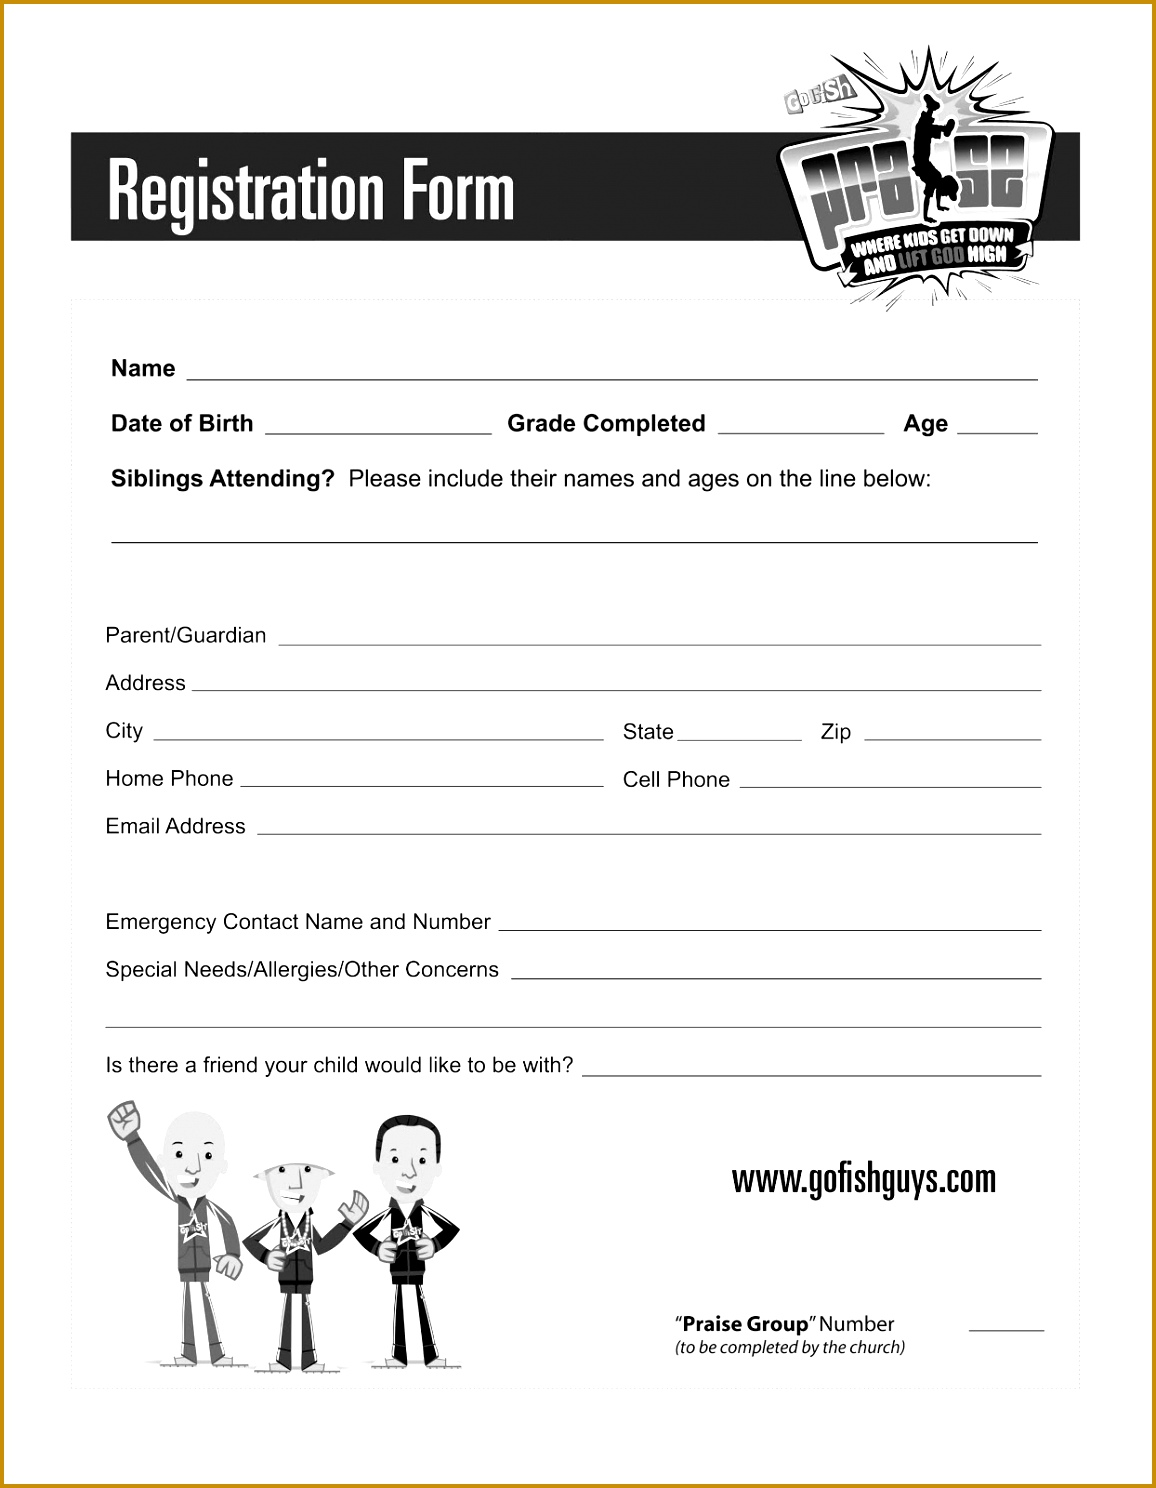 100 Membership Application Form Template Word Application Church Registration Form Church Registration Form Church Registration Form 14881156